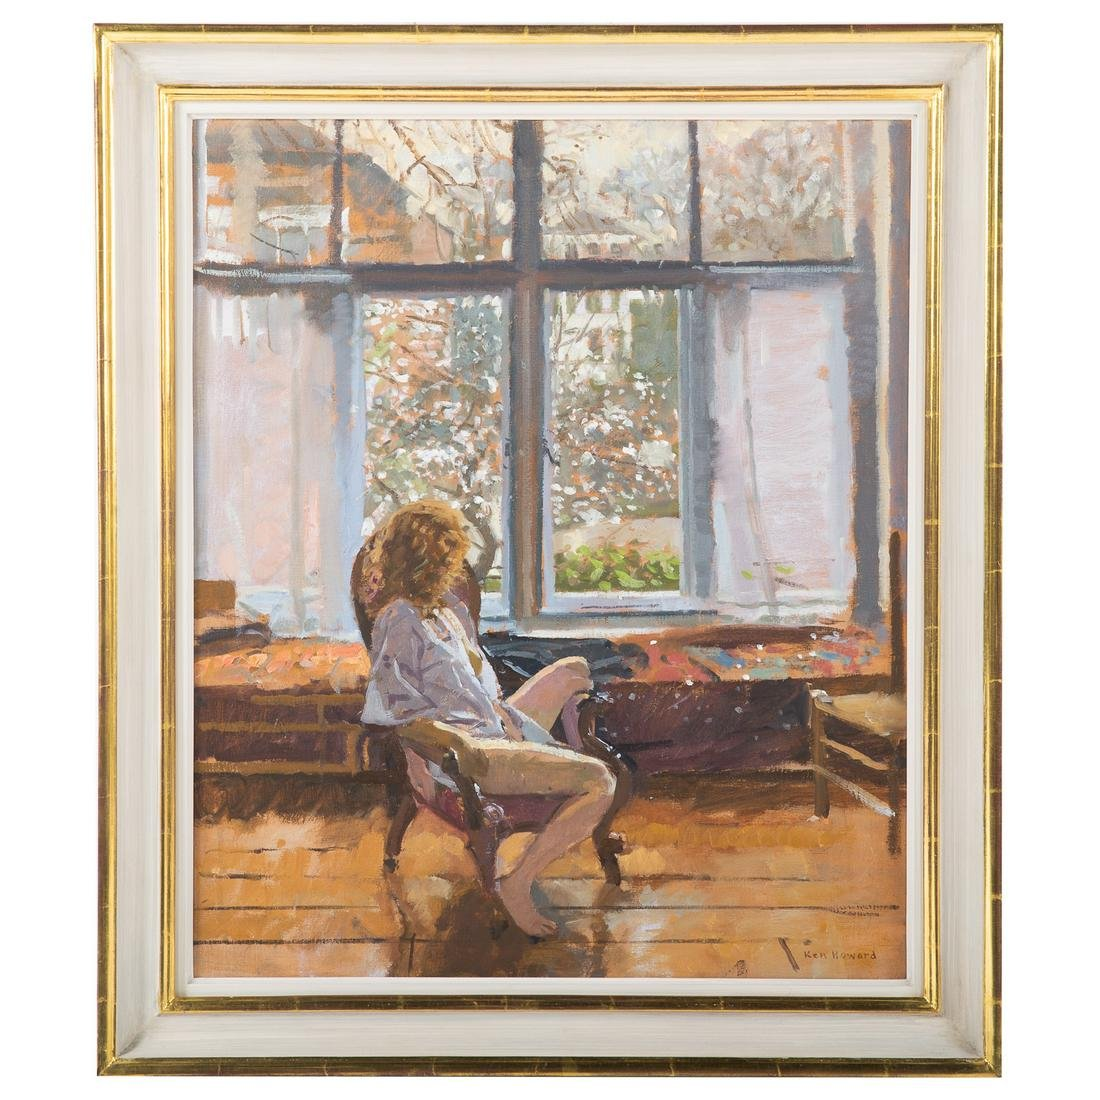 Ken Howard. The Artist's Model